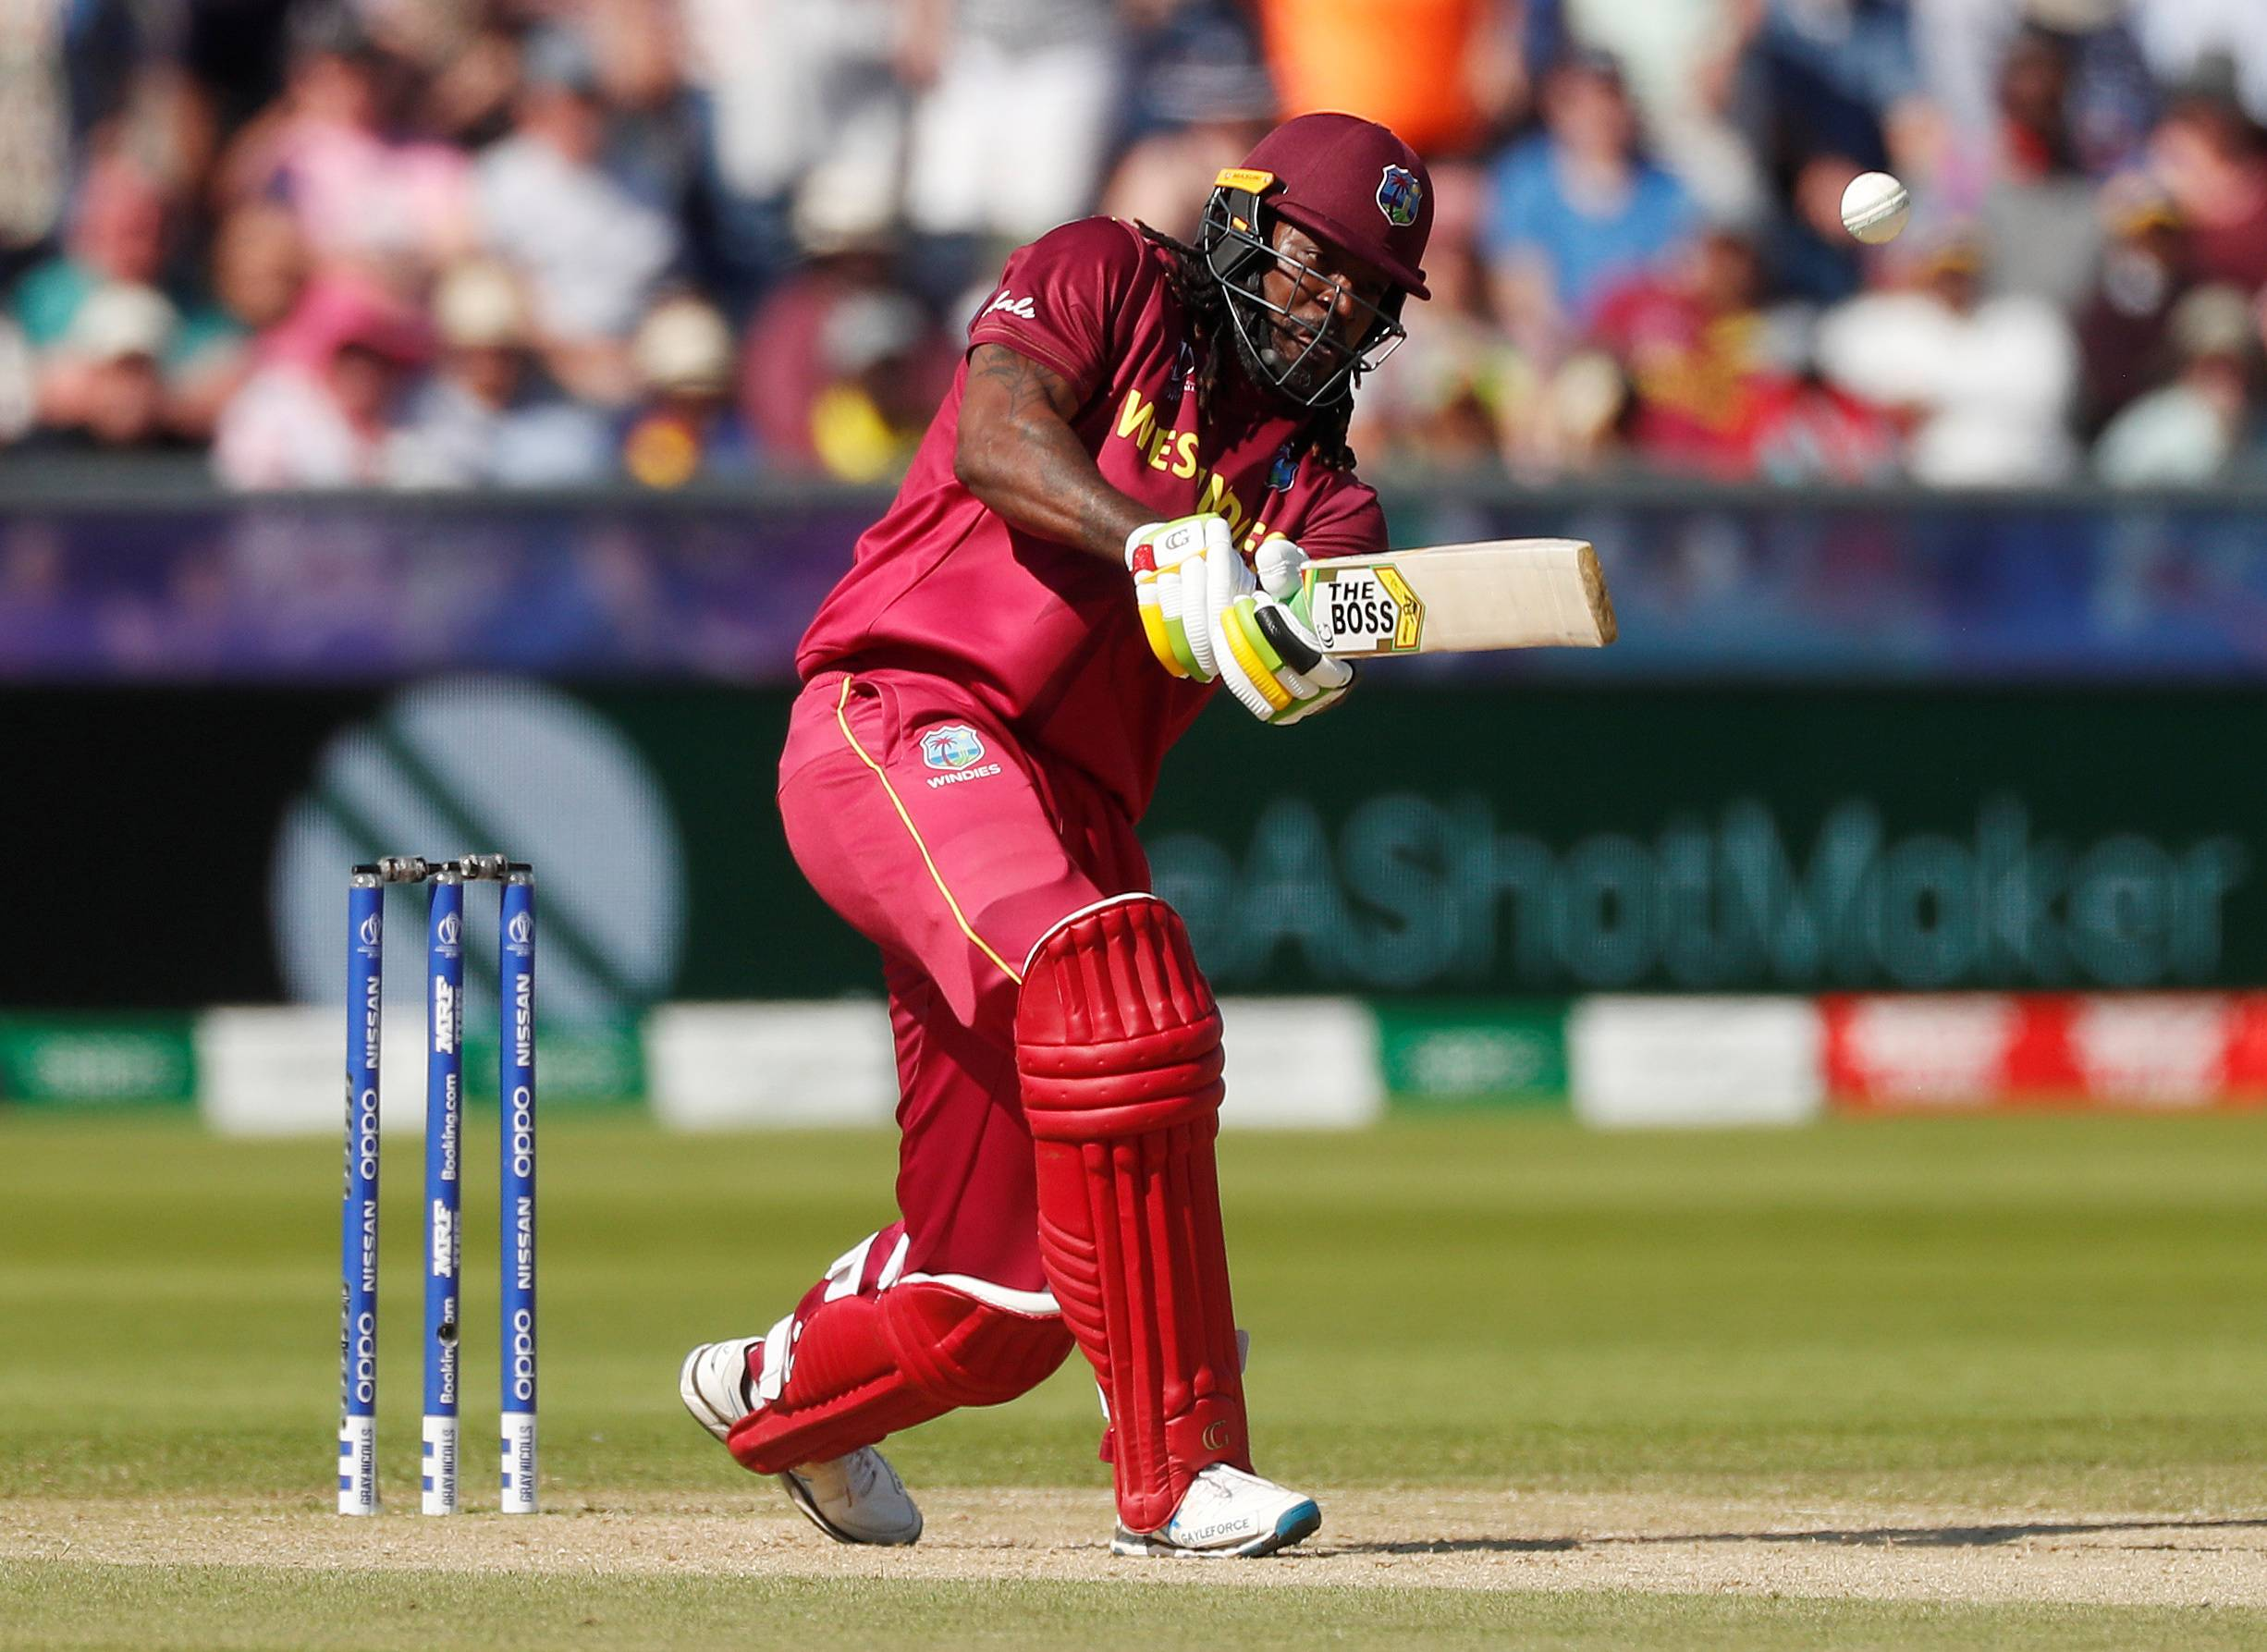 The West Indies' Chris Gayle competes against Sri Lanka during the ICC Cricket World Cup on July 1, 2019, in Chester-le-Street, Britain. | REUTERS